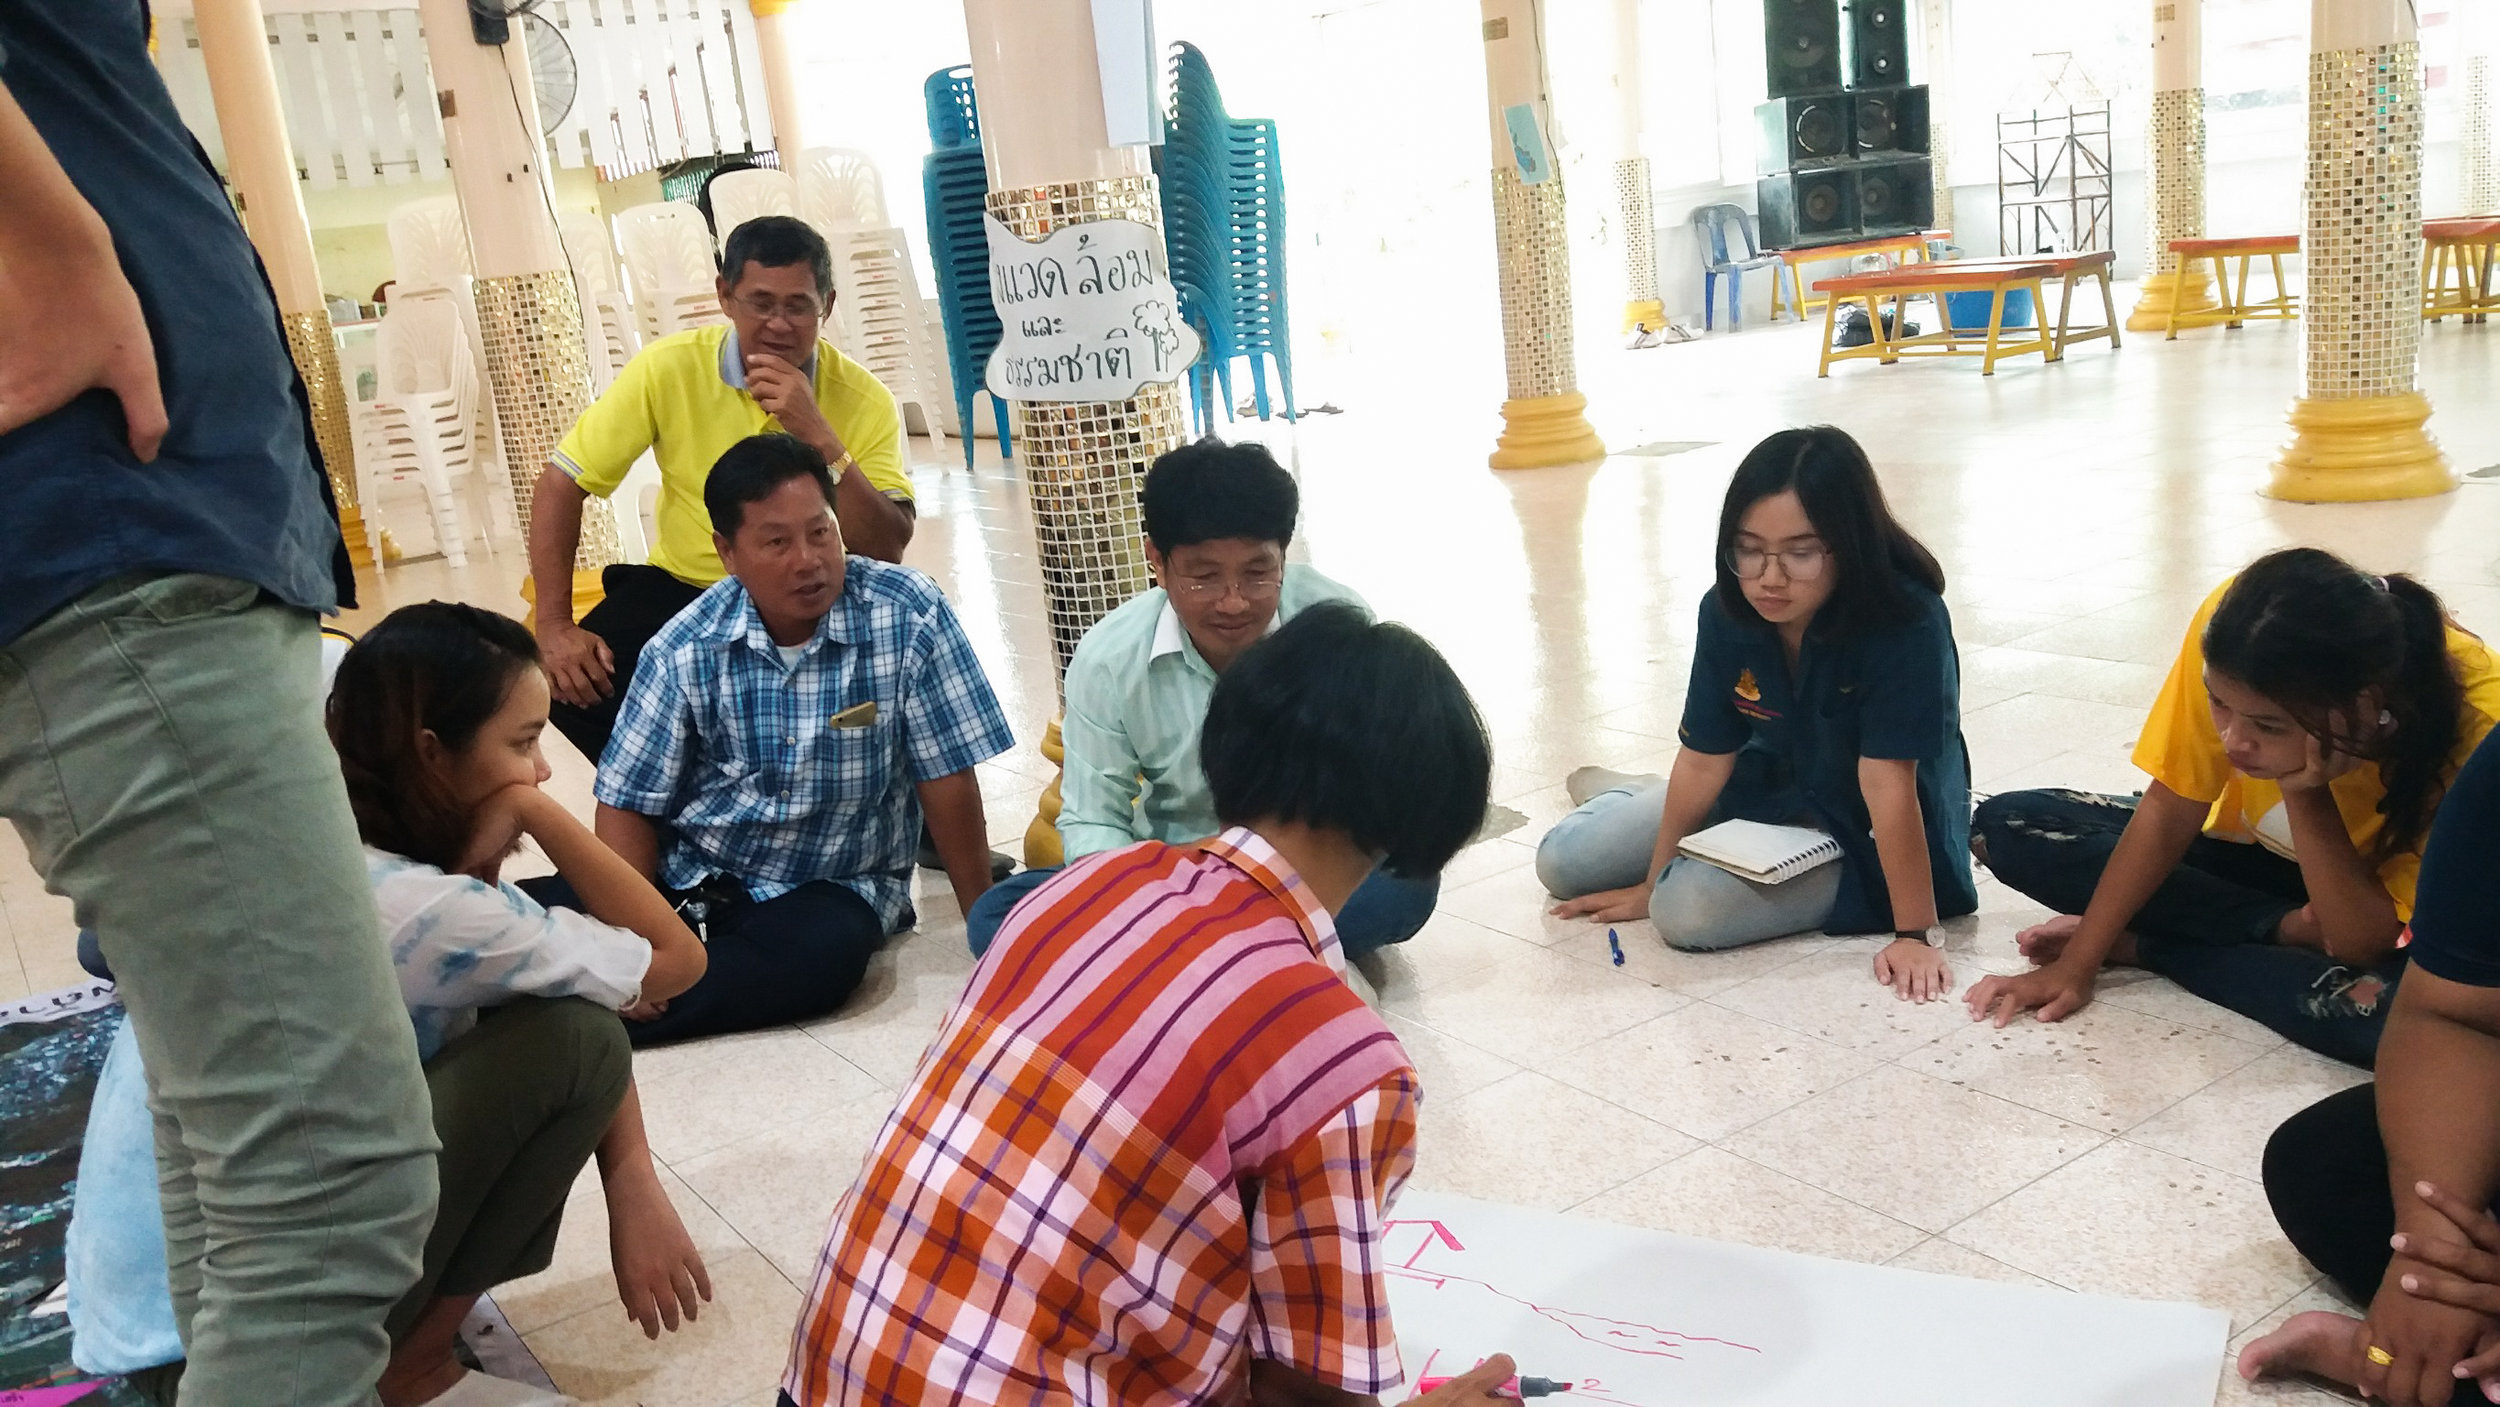 CODI at Bueng Se Nat: community member mapping the city's resources, problems, and opportunities in Nakhon Sawan, Thailand